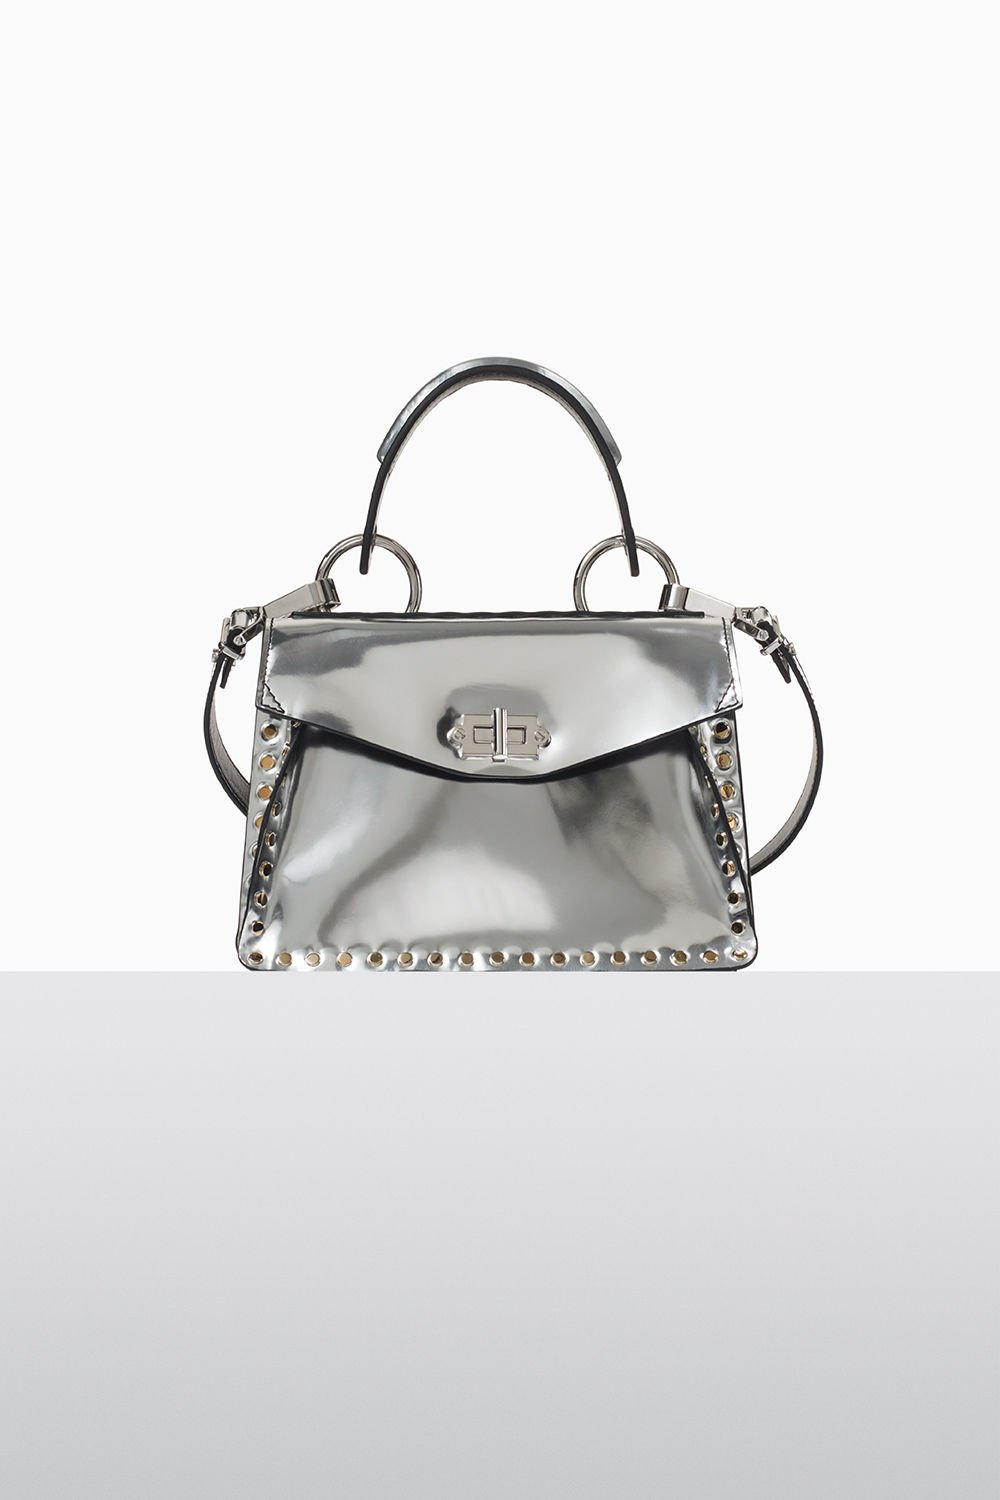 proenza schouler fall 2017 silver studded metallic leather small hava top handle bag